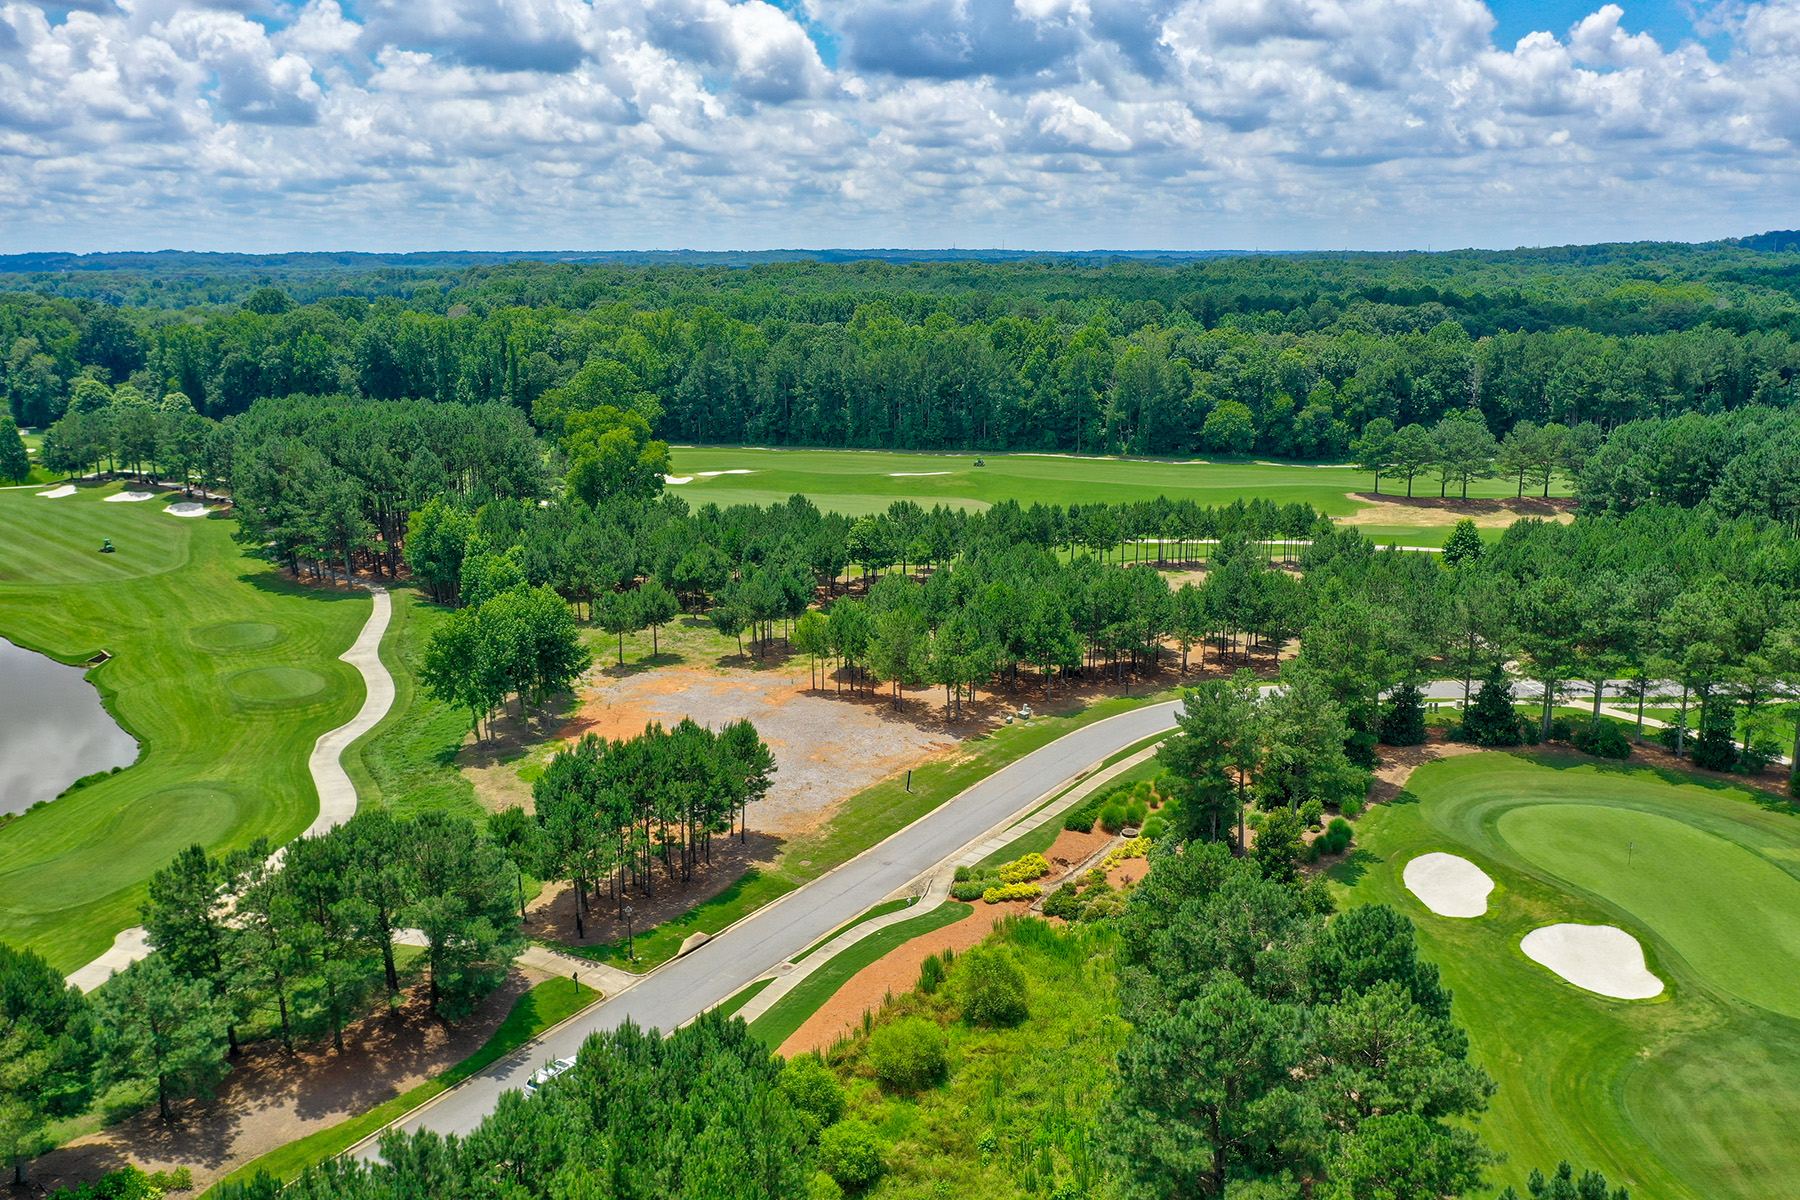 Land for Sale at An Opportunity Like No Other in The River Club 779 Crescent River Pass Suwanee, Georgia 30024 United States